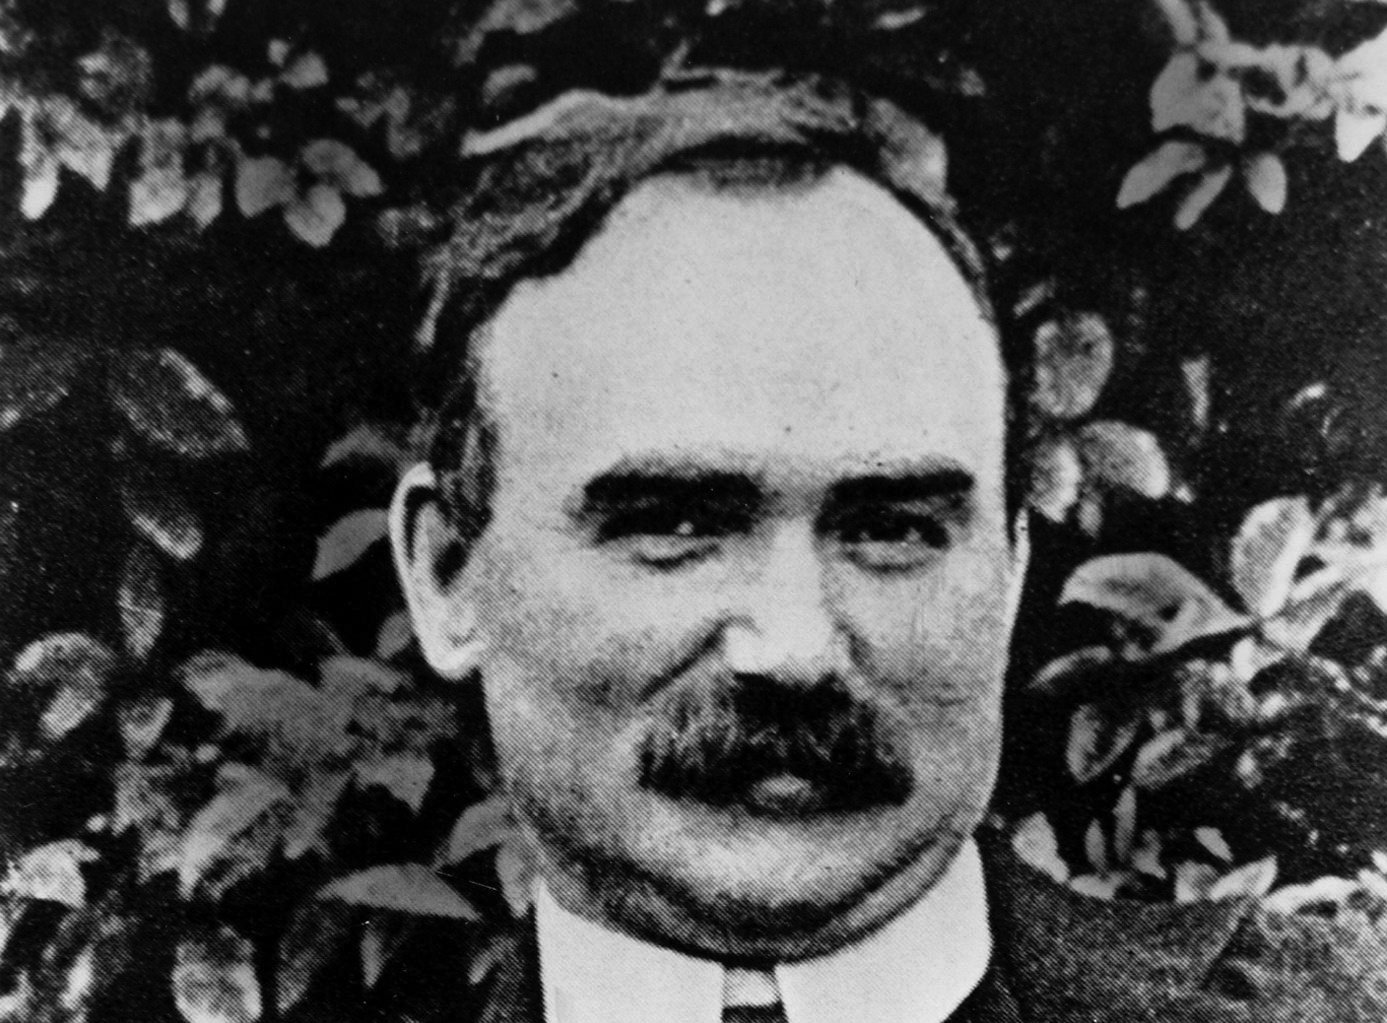 James Connolly was a revolutionary socialist, trade union leader and political theorist